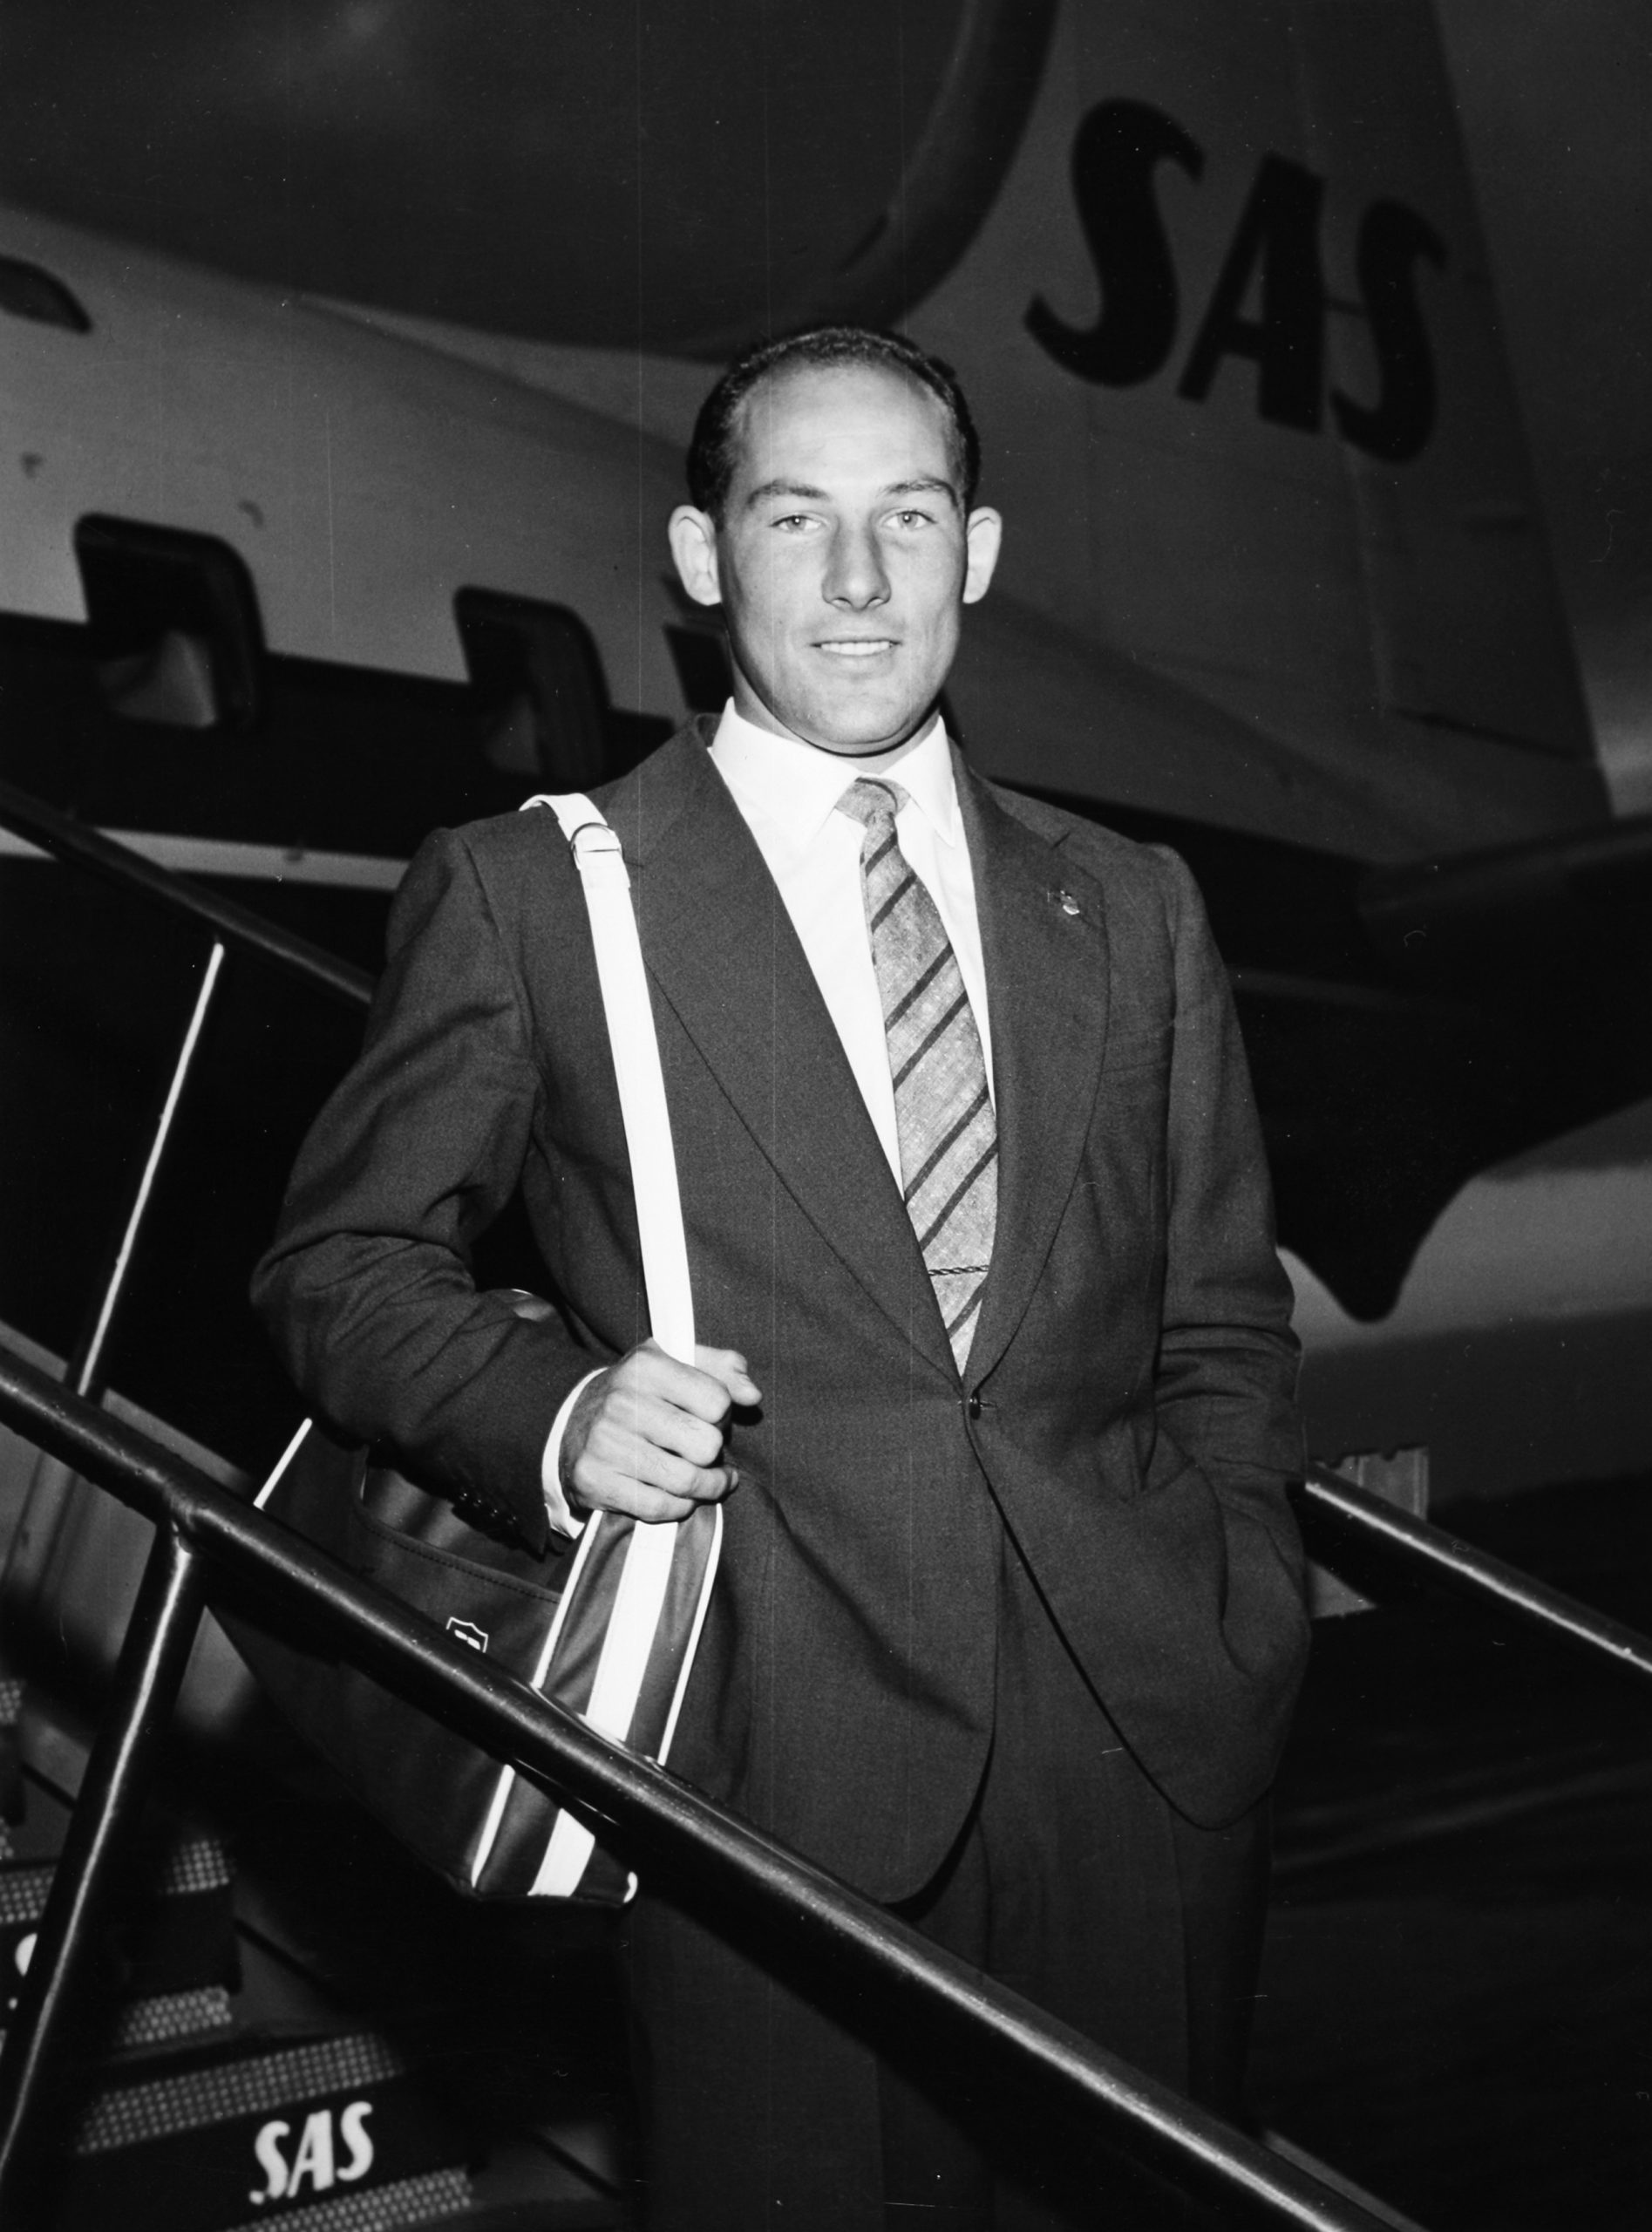 Stirling Moss young sas airlines denmark plane